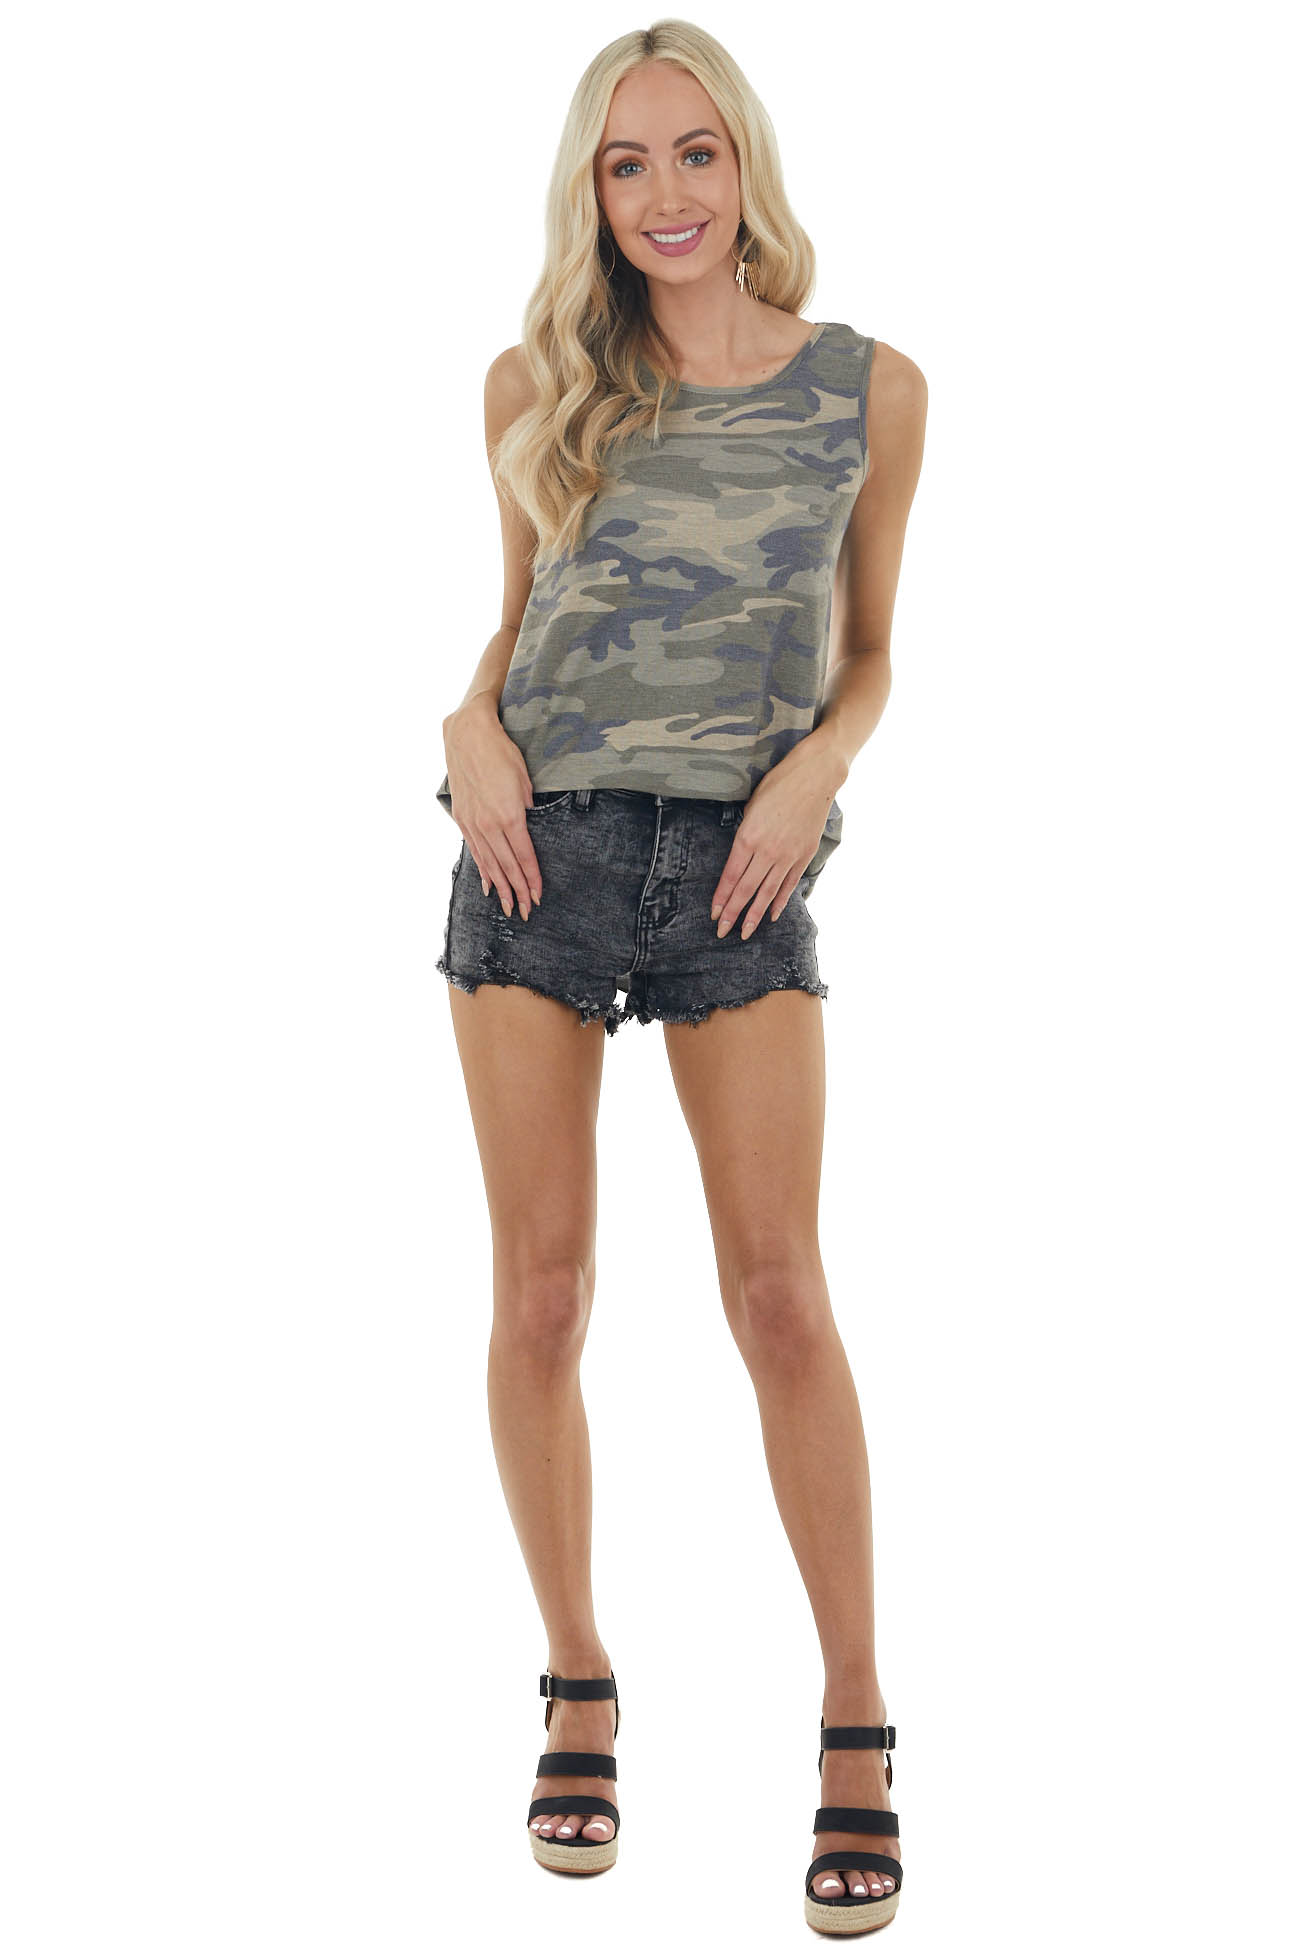 Dusty Camo Print Knit Tank Top with Open Back Twist Detail